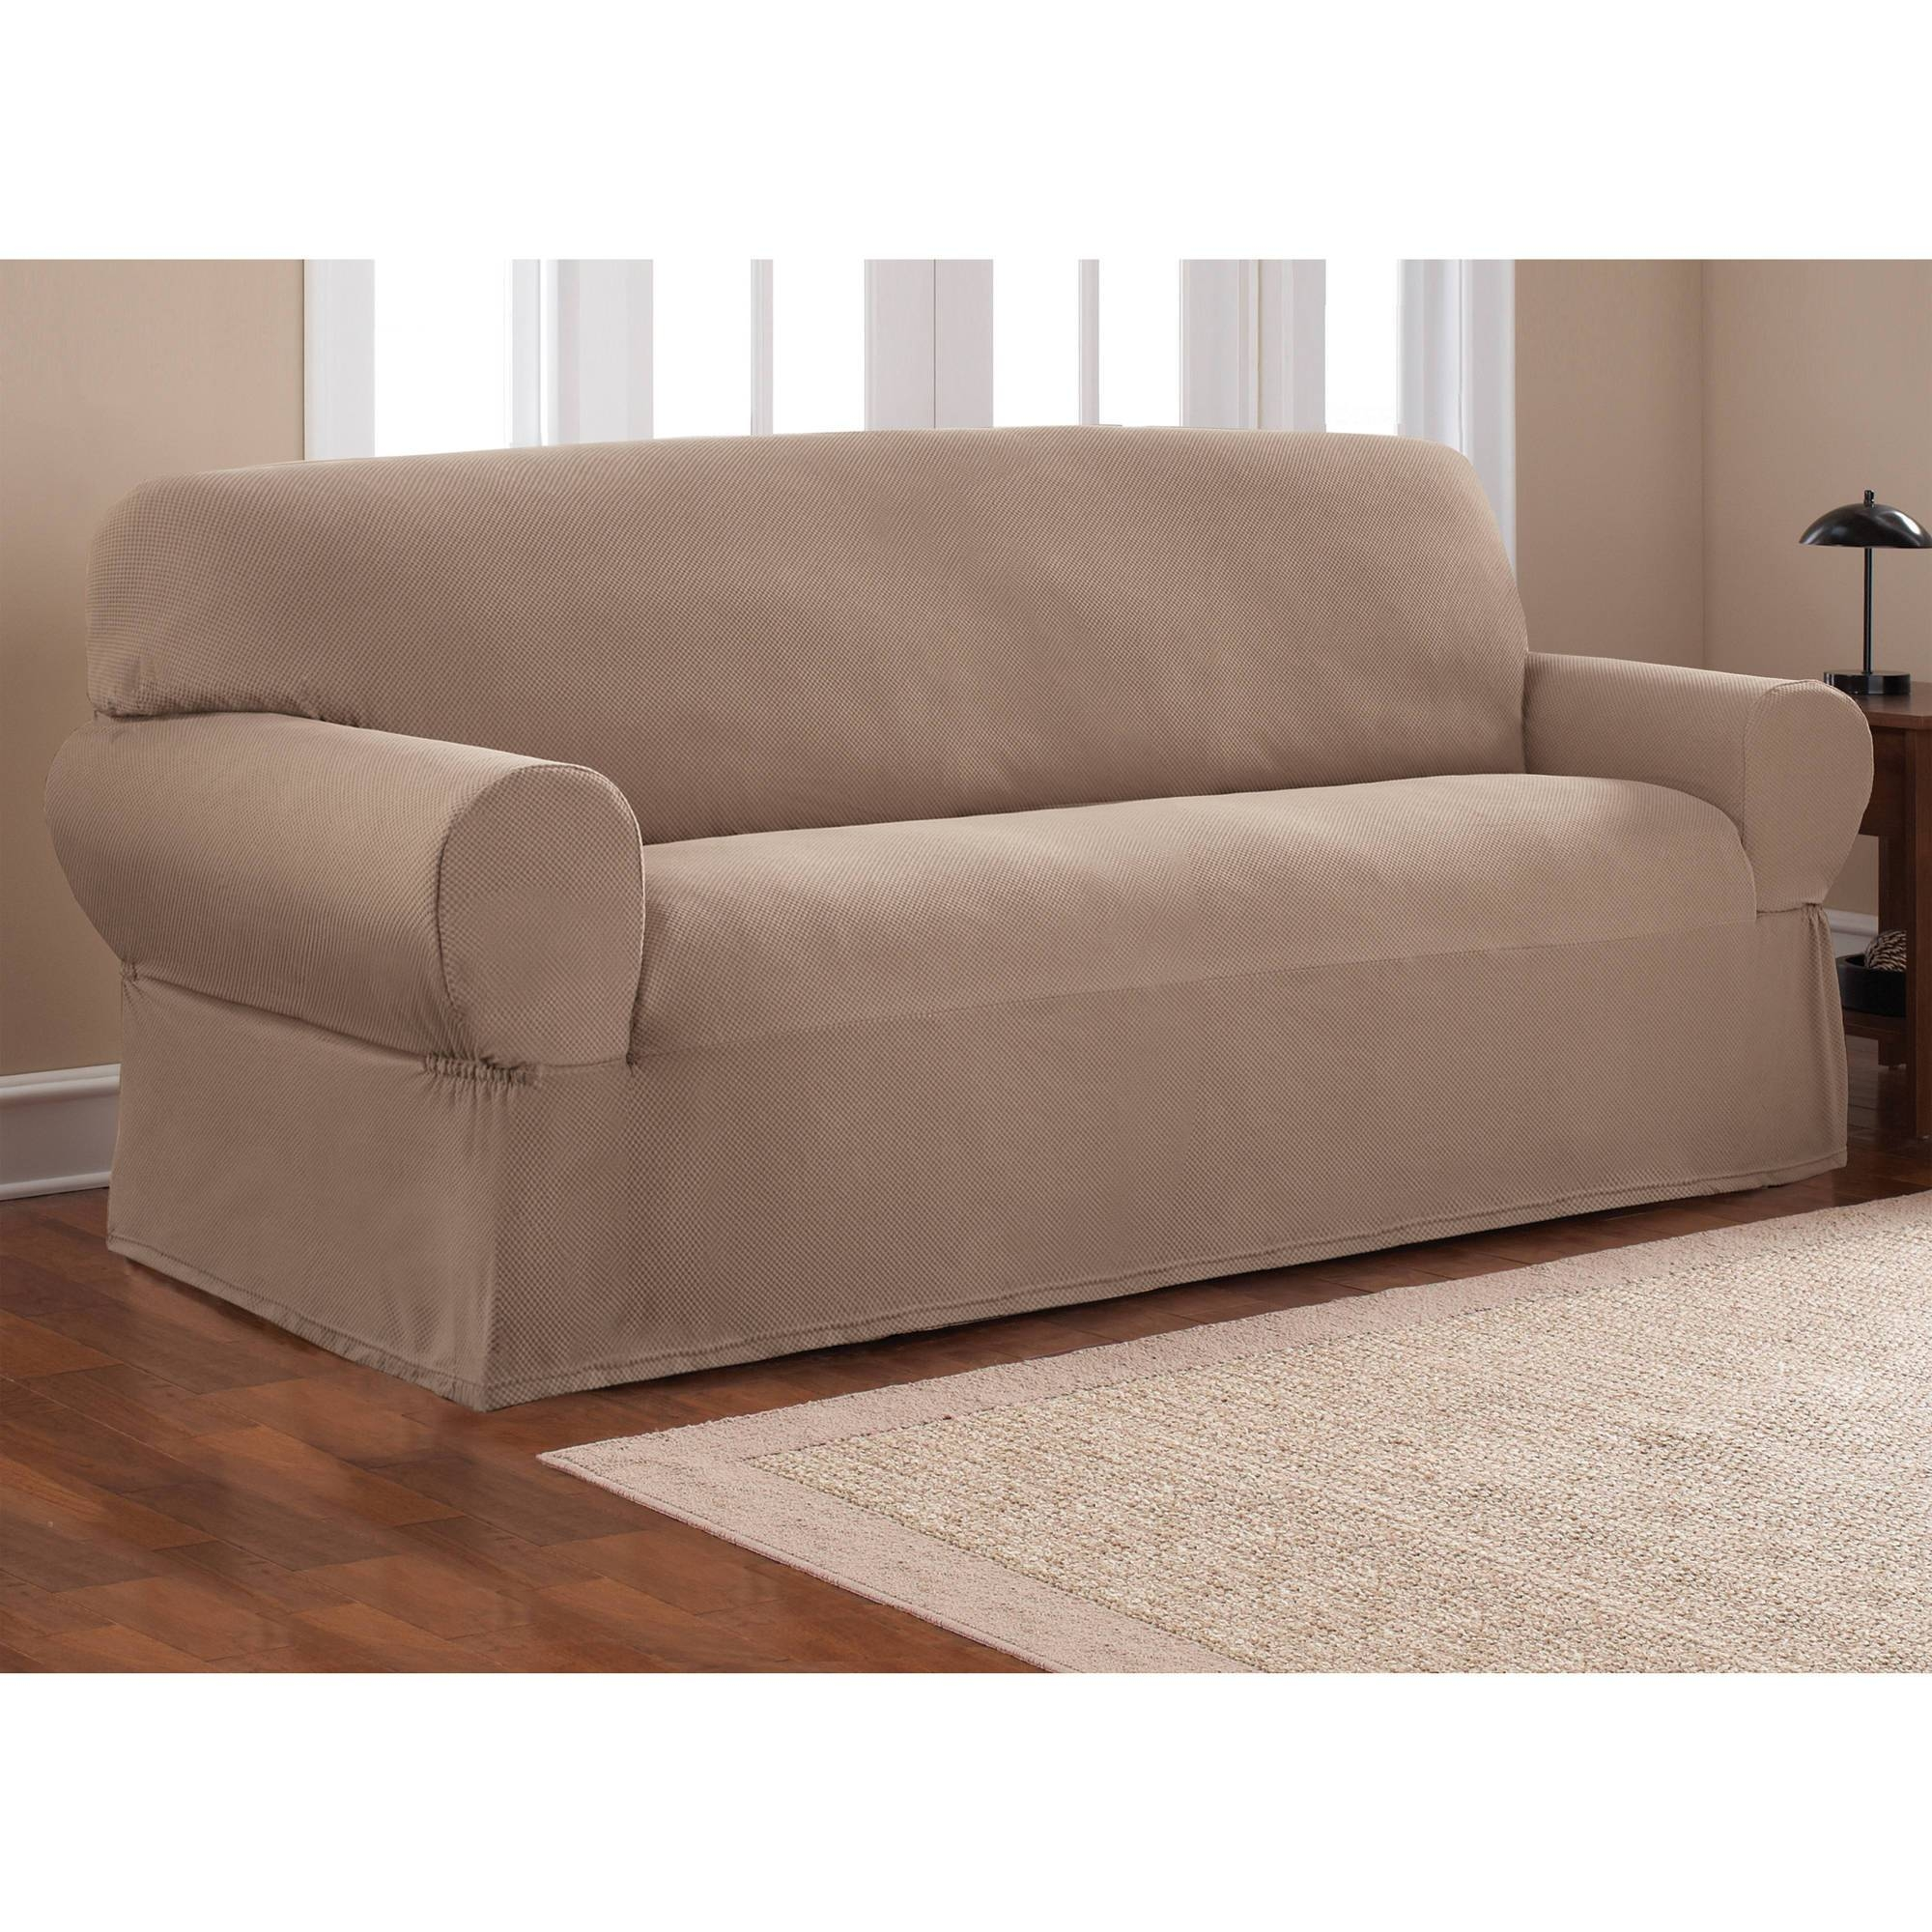 Mainstays 1-Piece Stretch Fabric Sofa Slipcover - Walmart in Wallmart Sofa (Image 18 of 25)